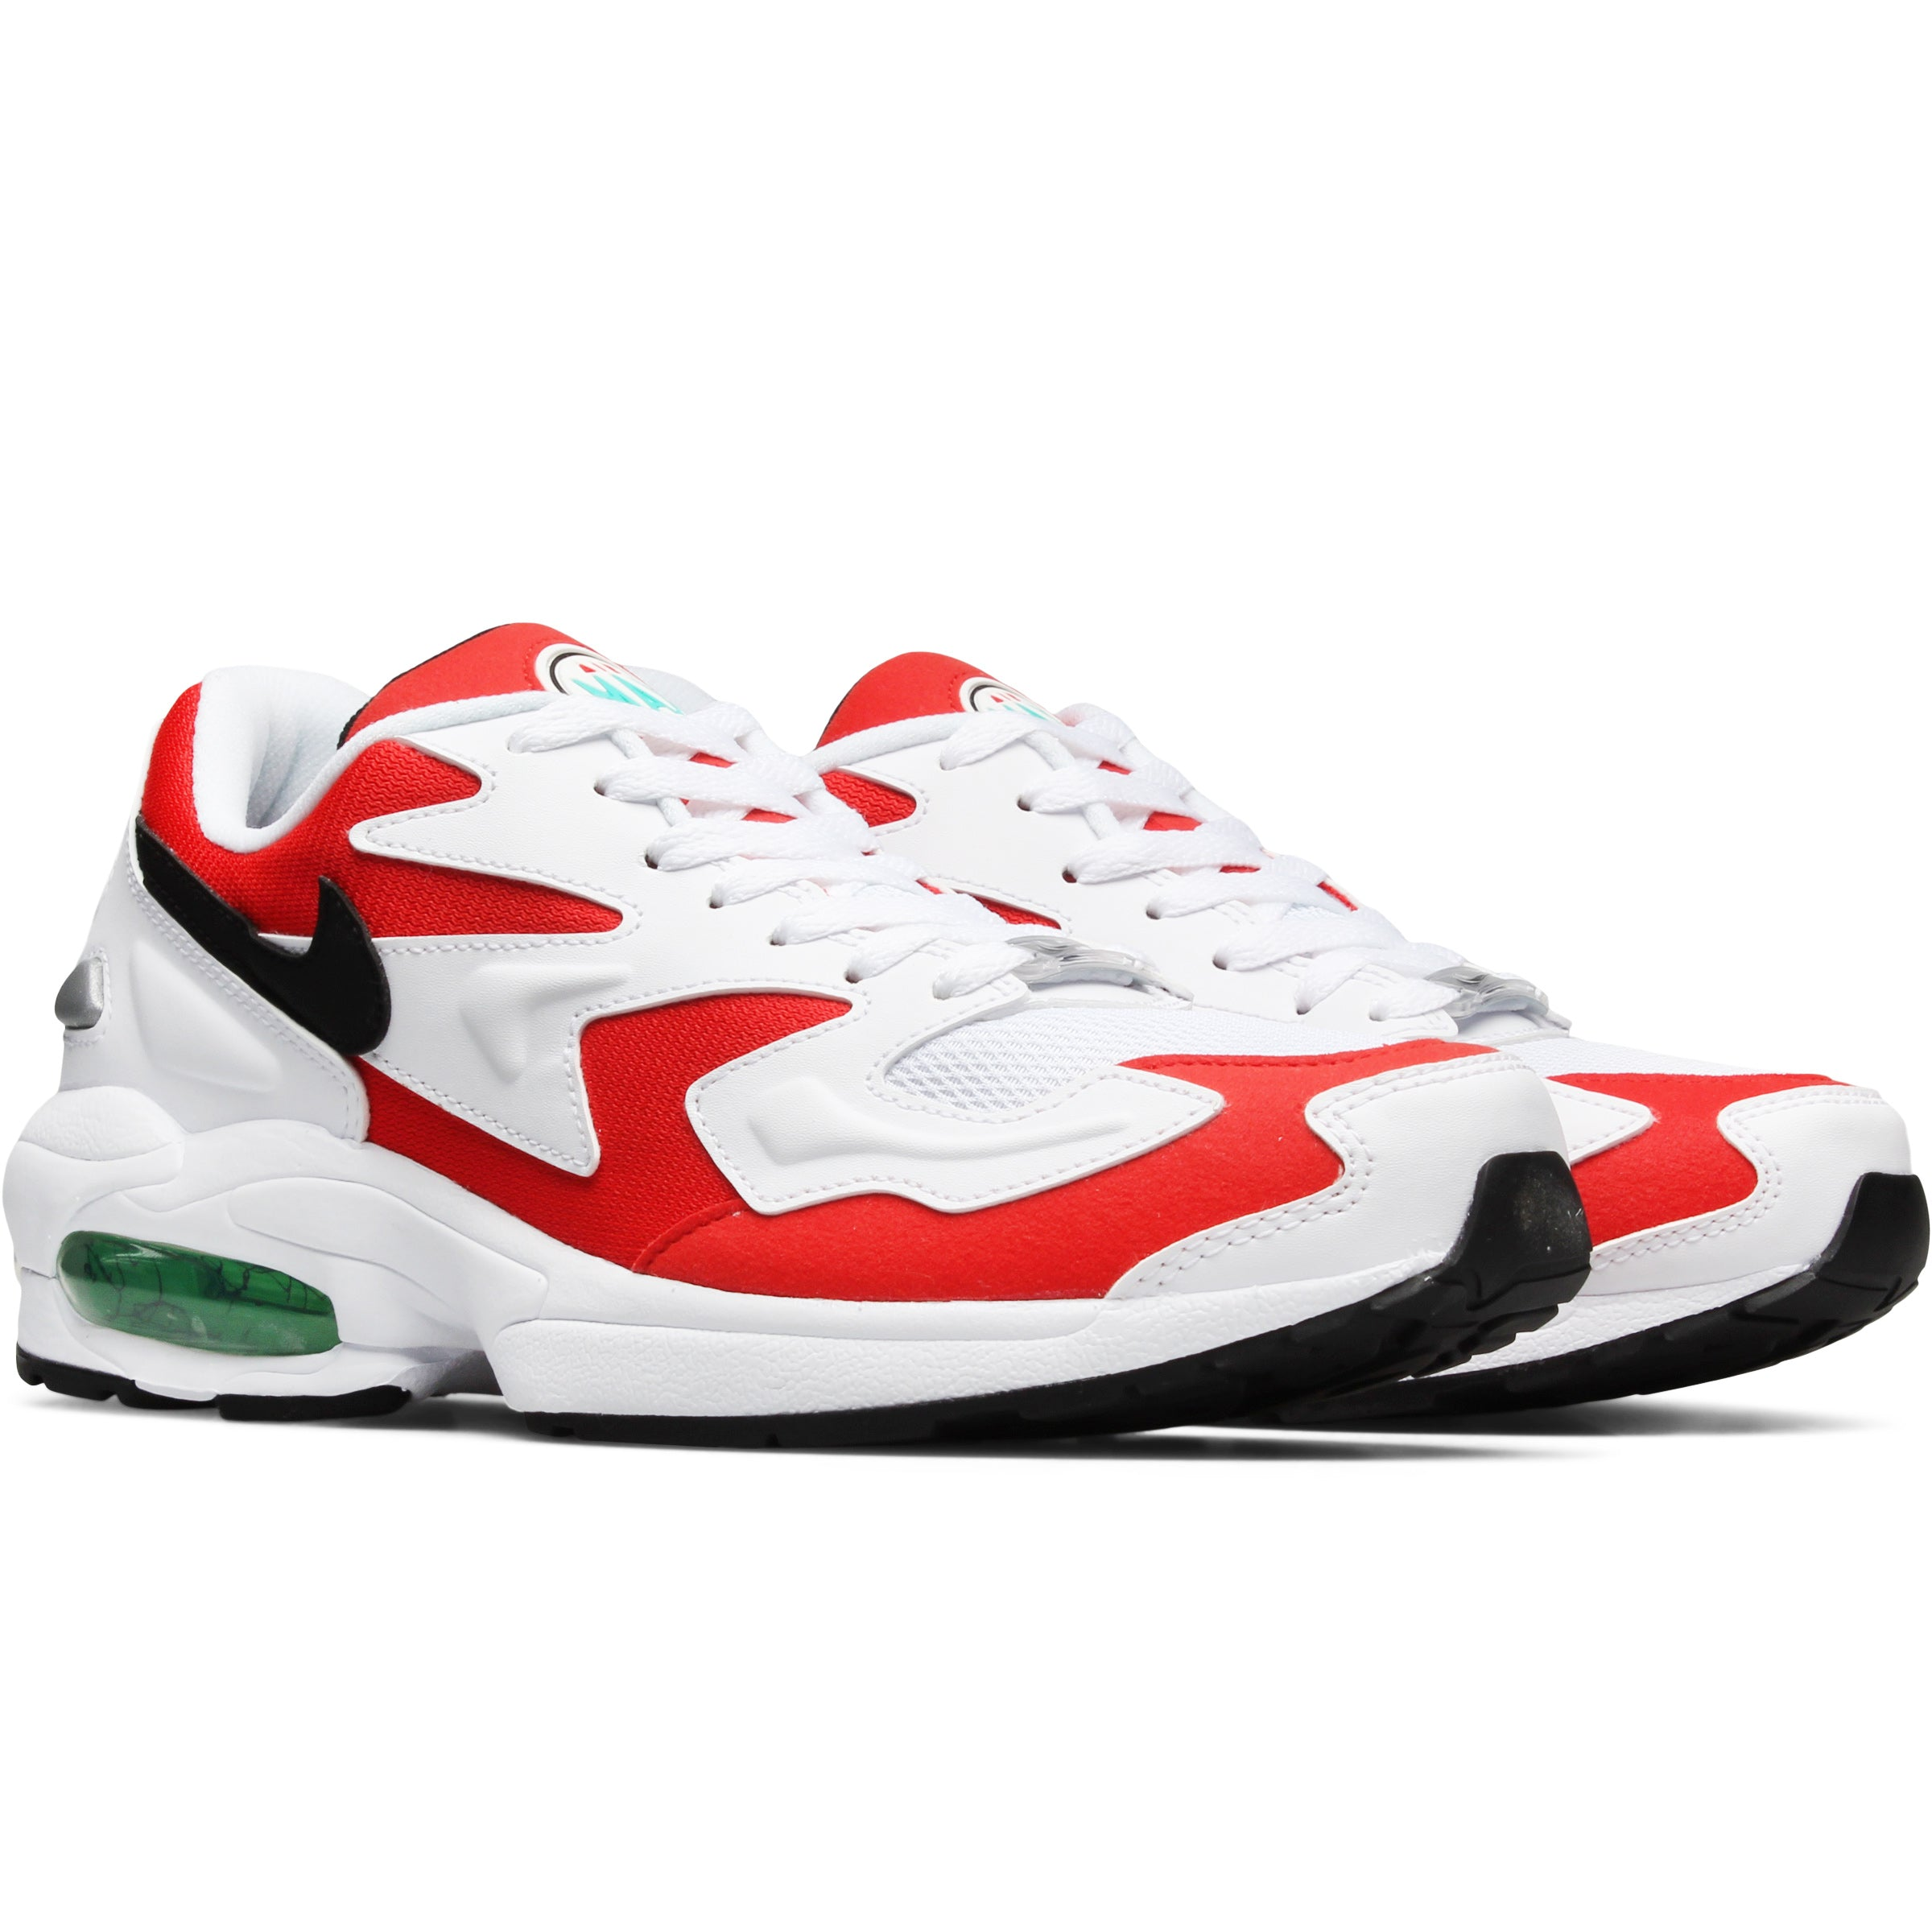 cacc711d34c Nike Air Max2 Light WHITE/BLACK-HABANERO RED-COOL GREY AO1741-101. Retail:  $140